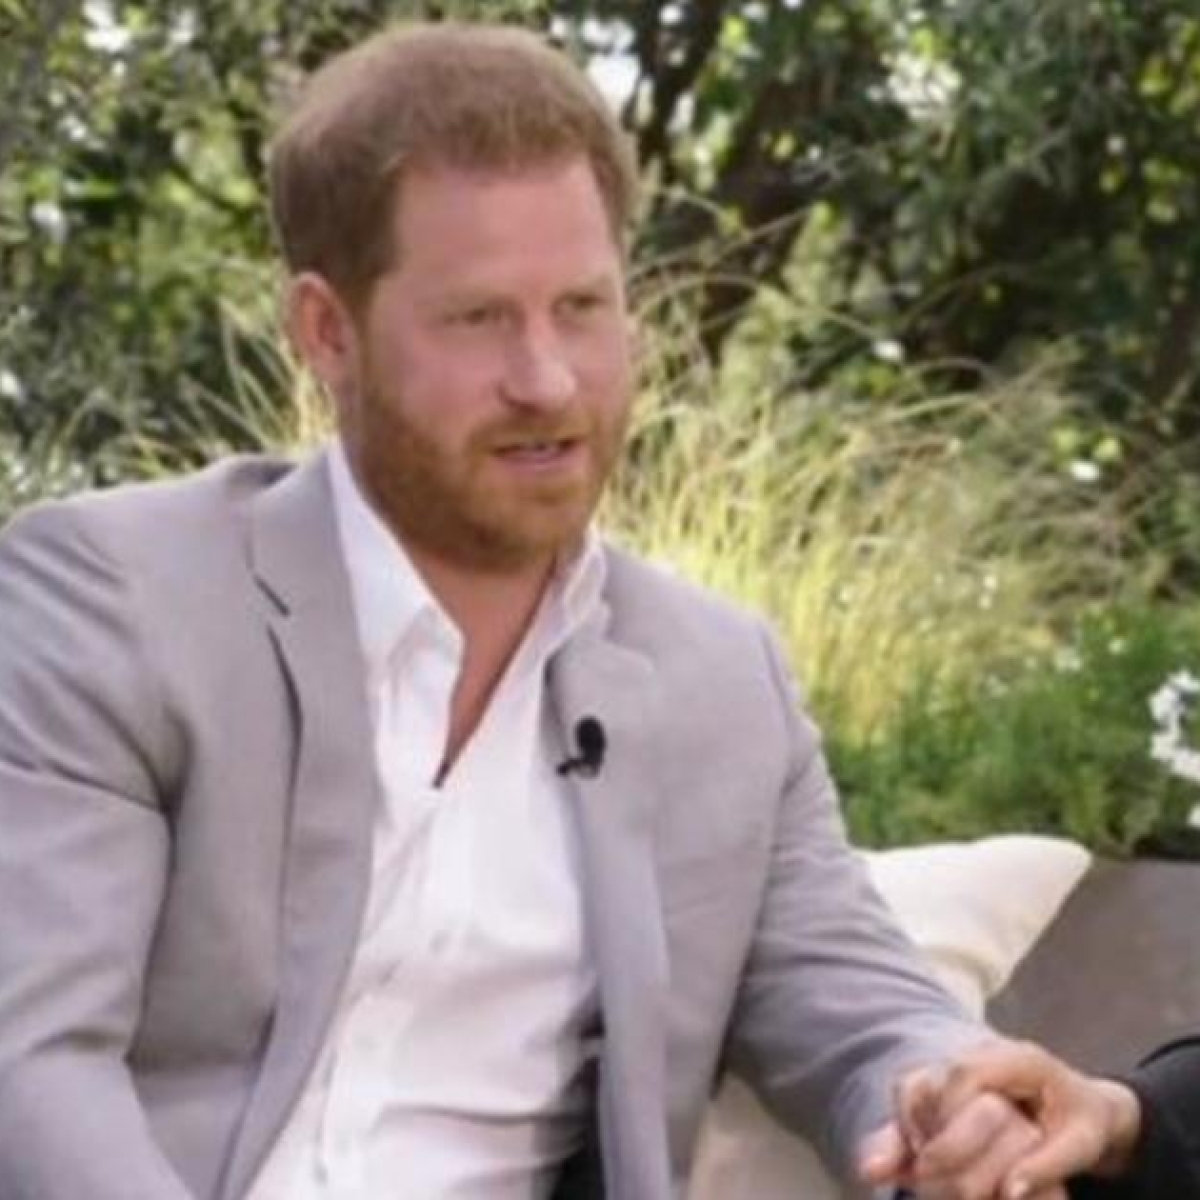 Prince Harry, Meghan Markle's Oprah interview 'won't be delayed' despite Prince Philip's 'health scare'